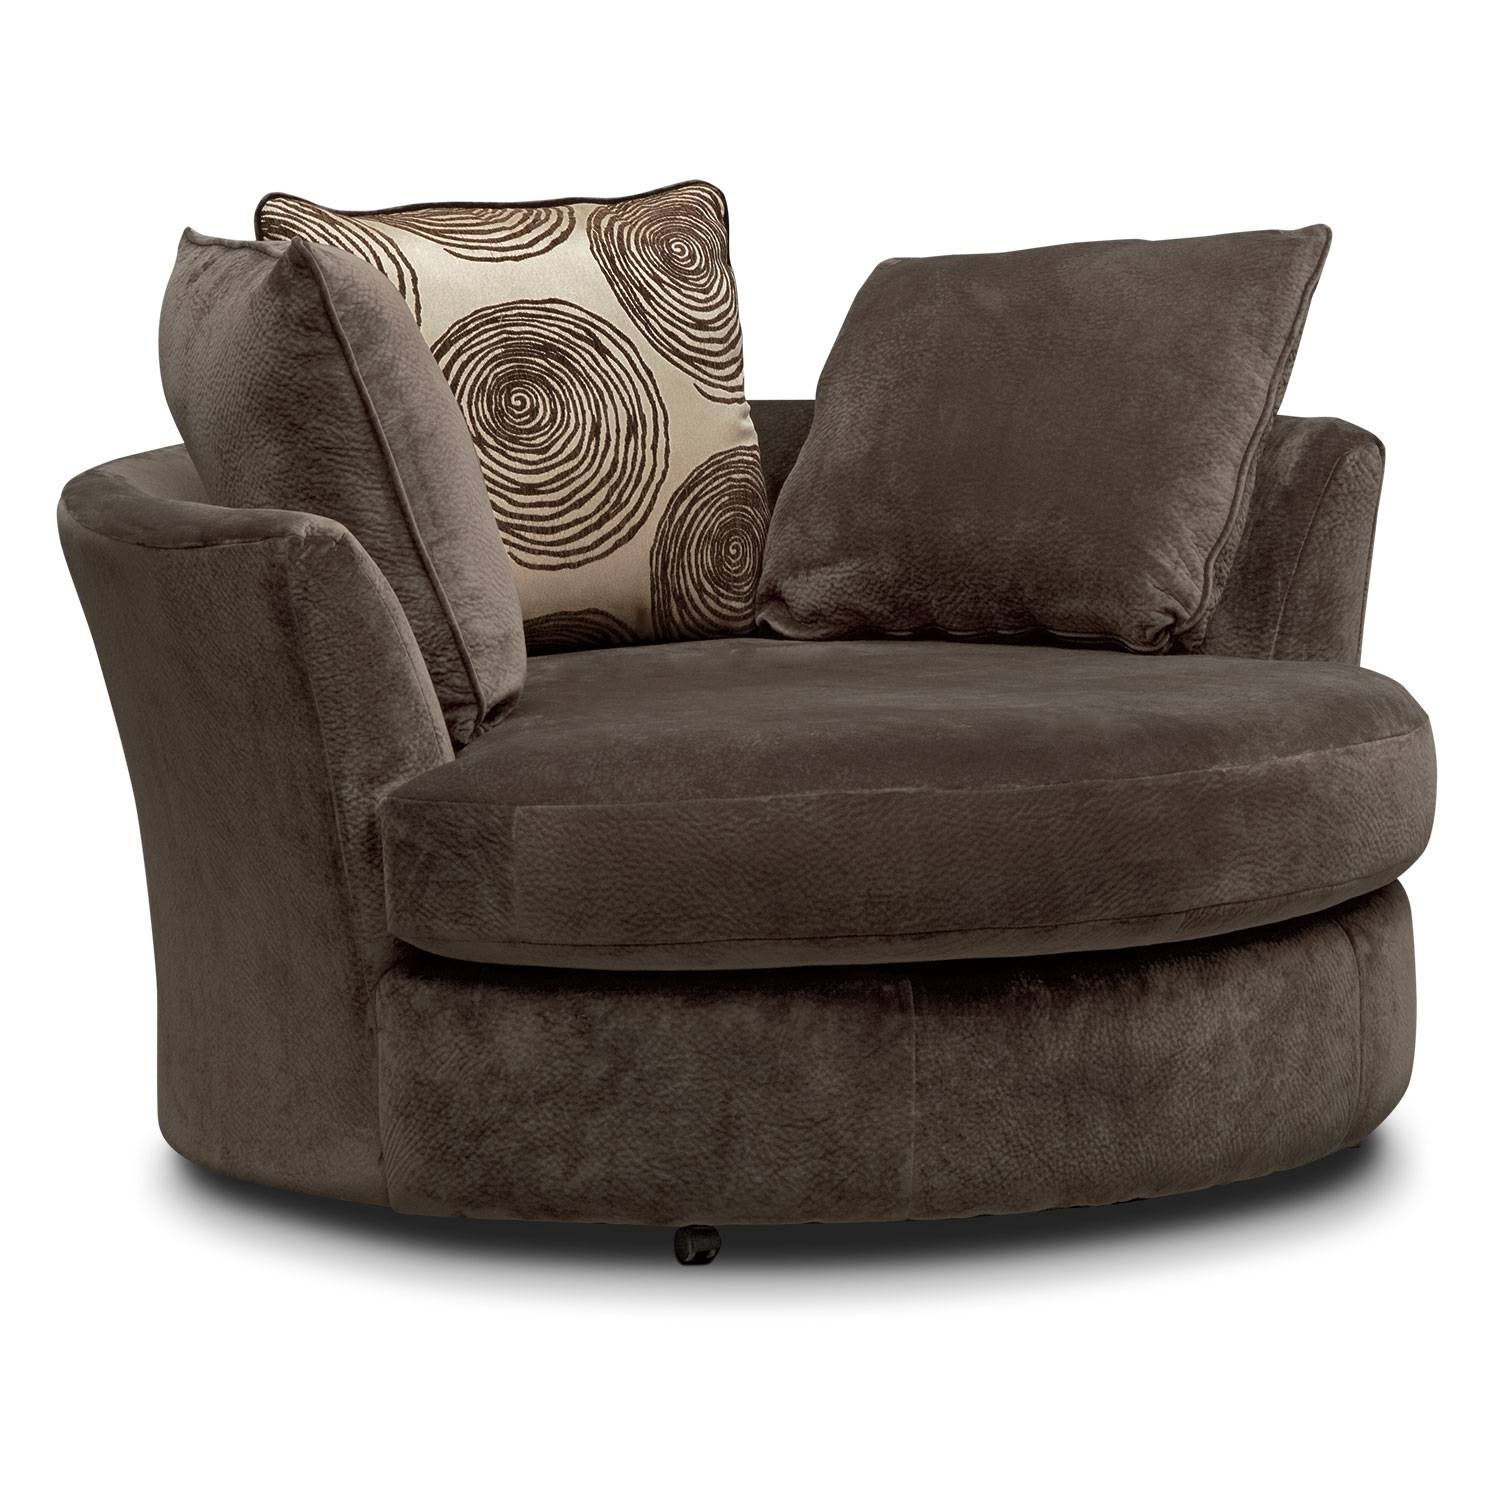 Cordelle Swivel Chair - Chocolate | Value City Furniture pertaining to Big Round Sofa Chairs (Image 8 of 30)